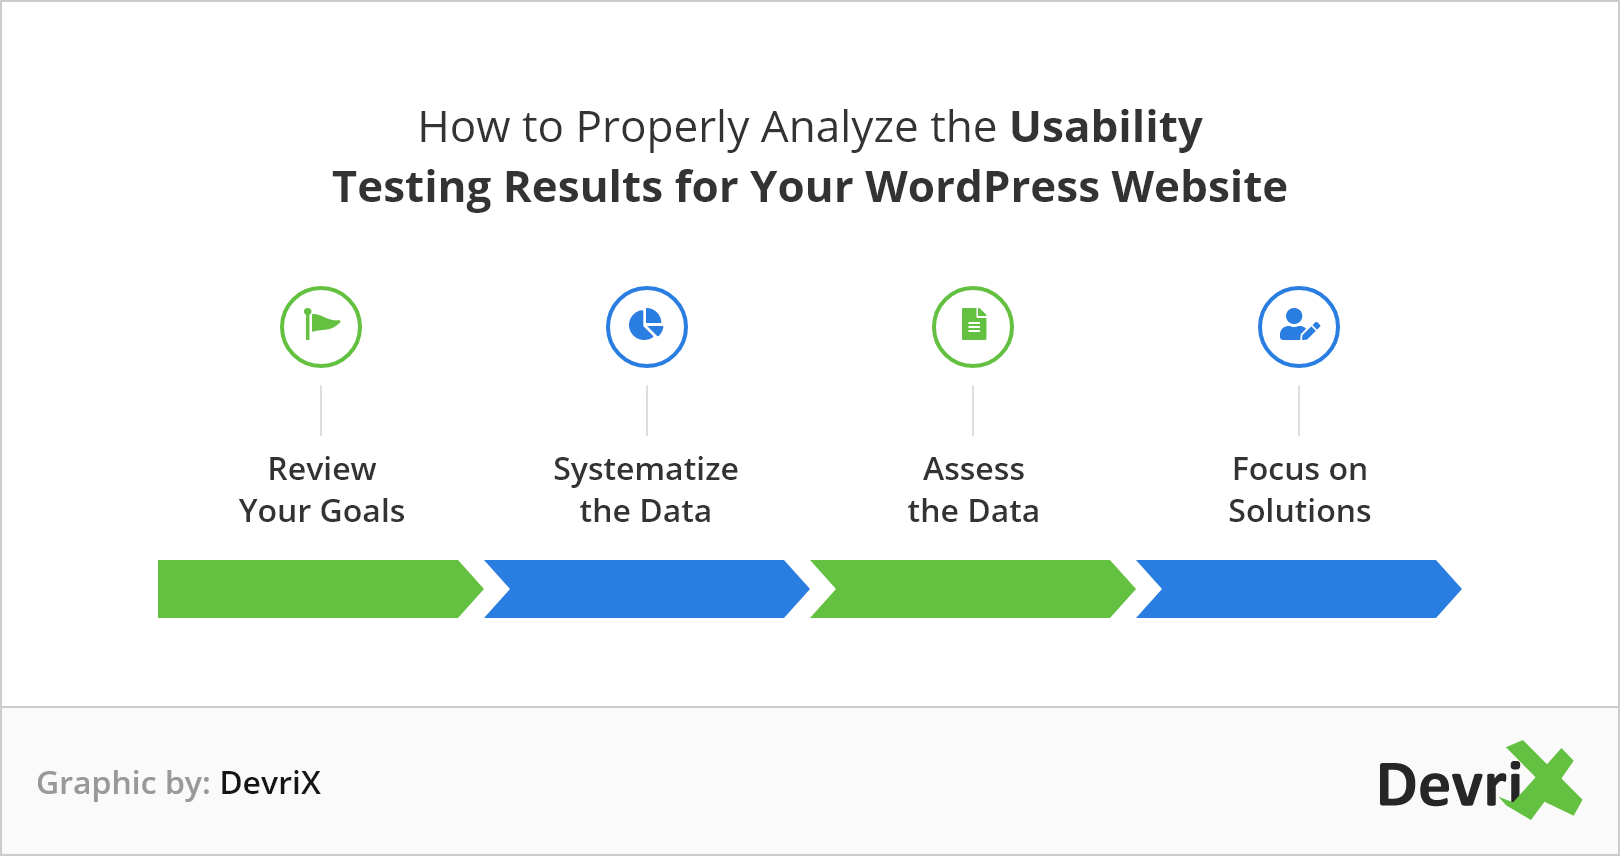 The steps to properly analyze the usability testing results for a WordPress website.